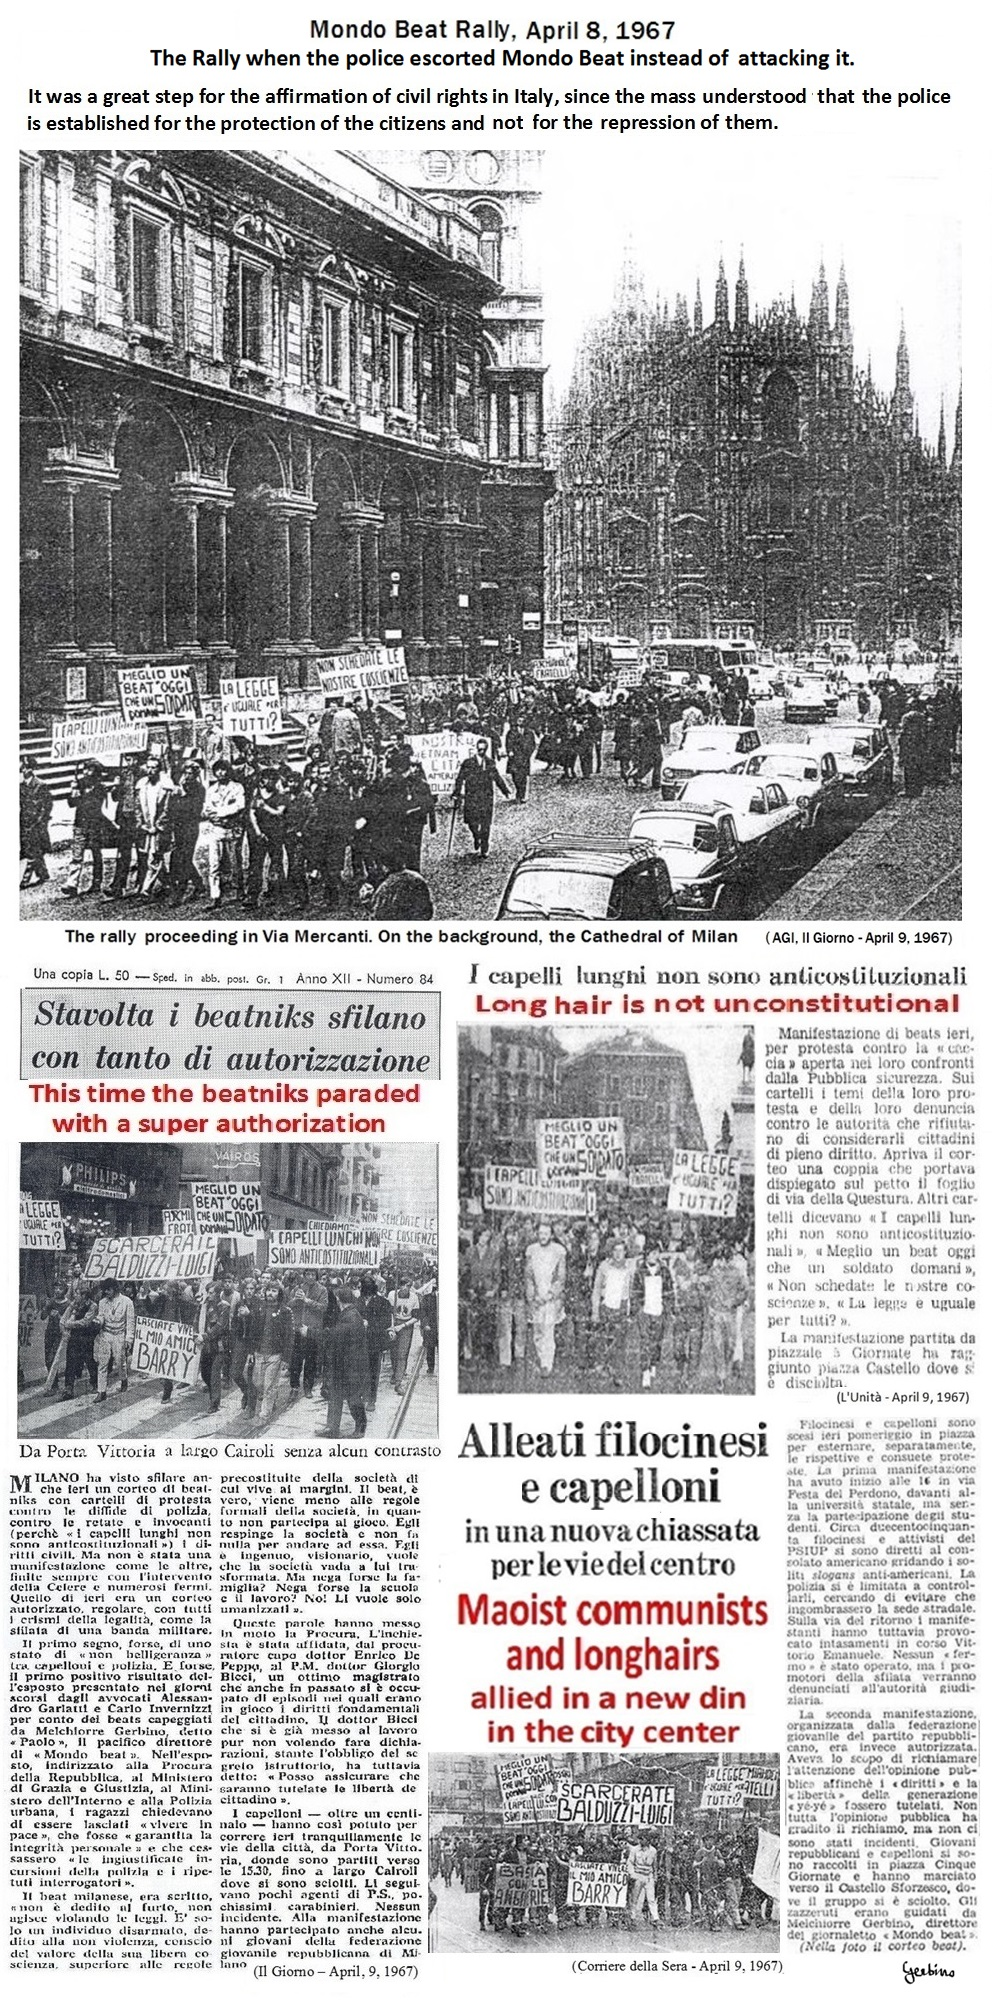 The Corriere della Sera, with its usual misinformation, asserted that Maoist communists and longhairs had caused a new din in the city center